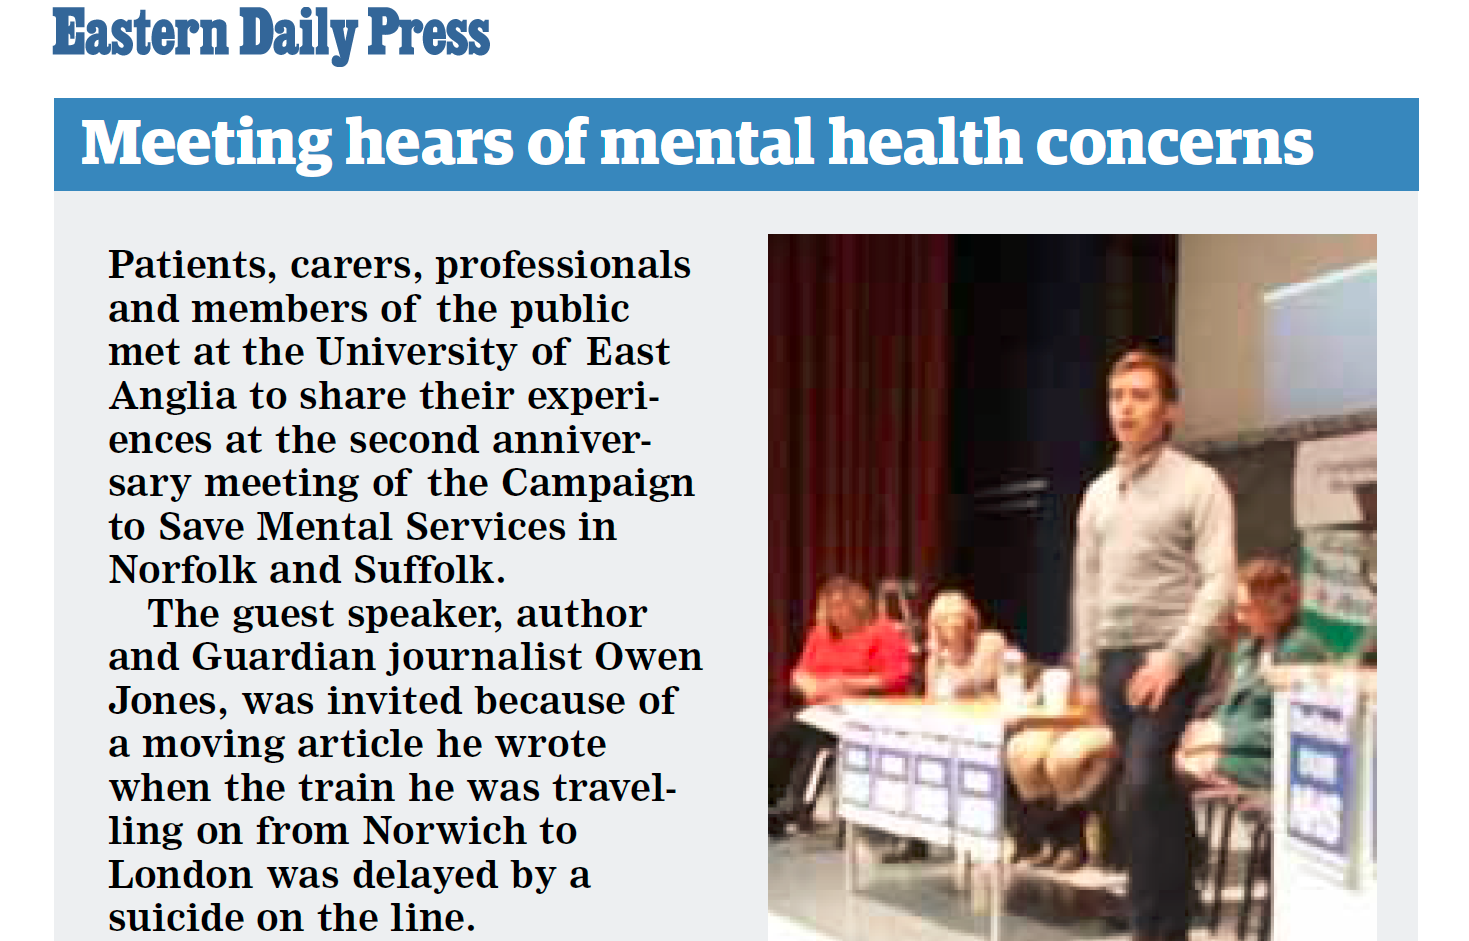 EDP Meeting hears of mental health concerns